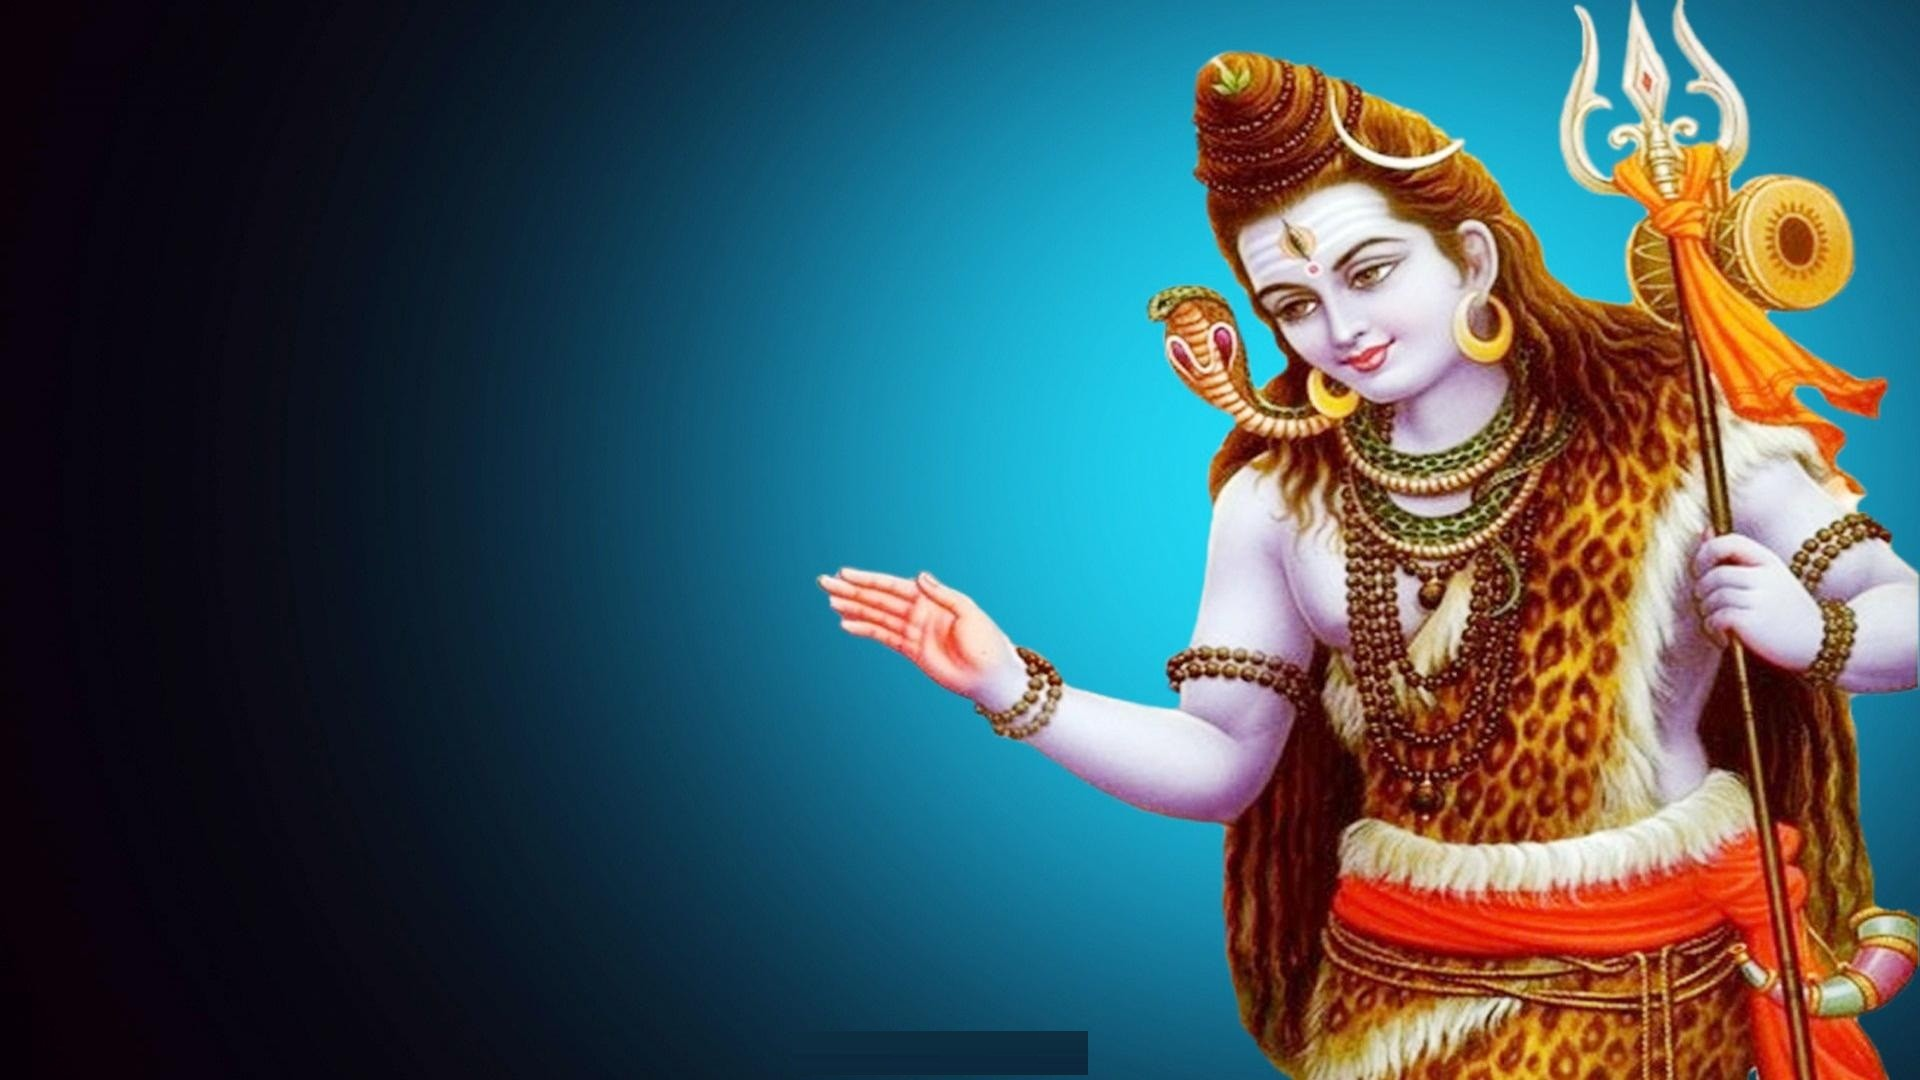 1920x1080 Category: Lord Shiva Wallpapers